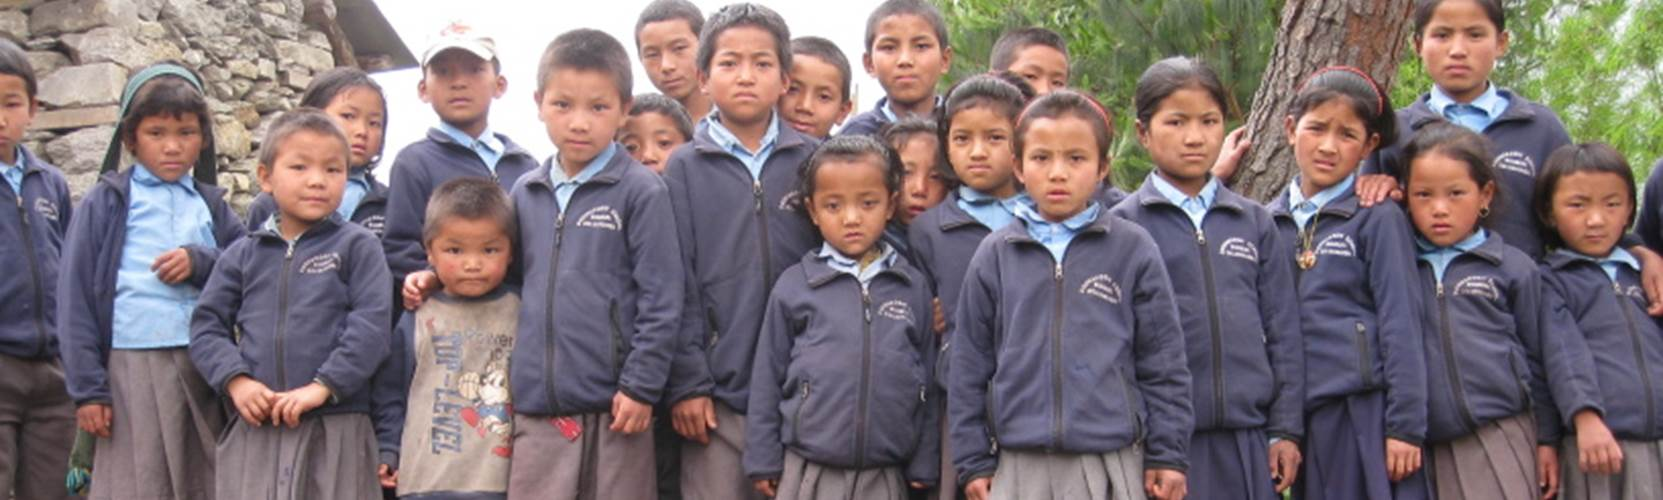 School expedition in Nepal - school children in the Himalayas